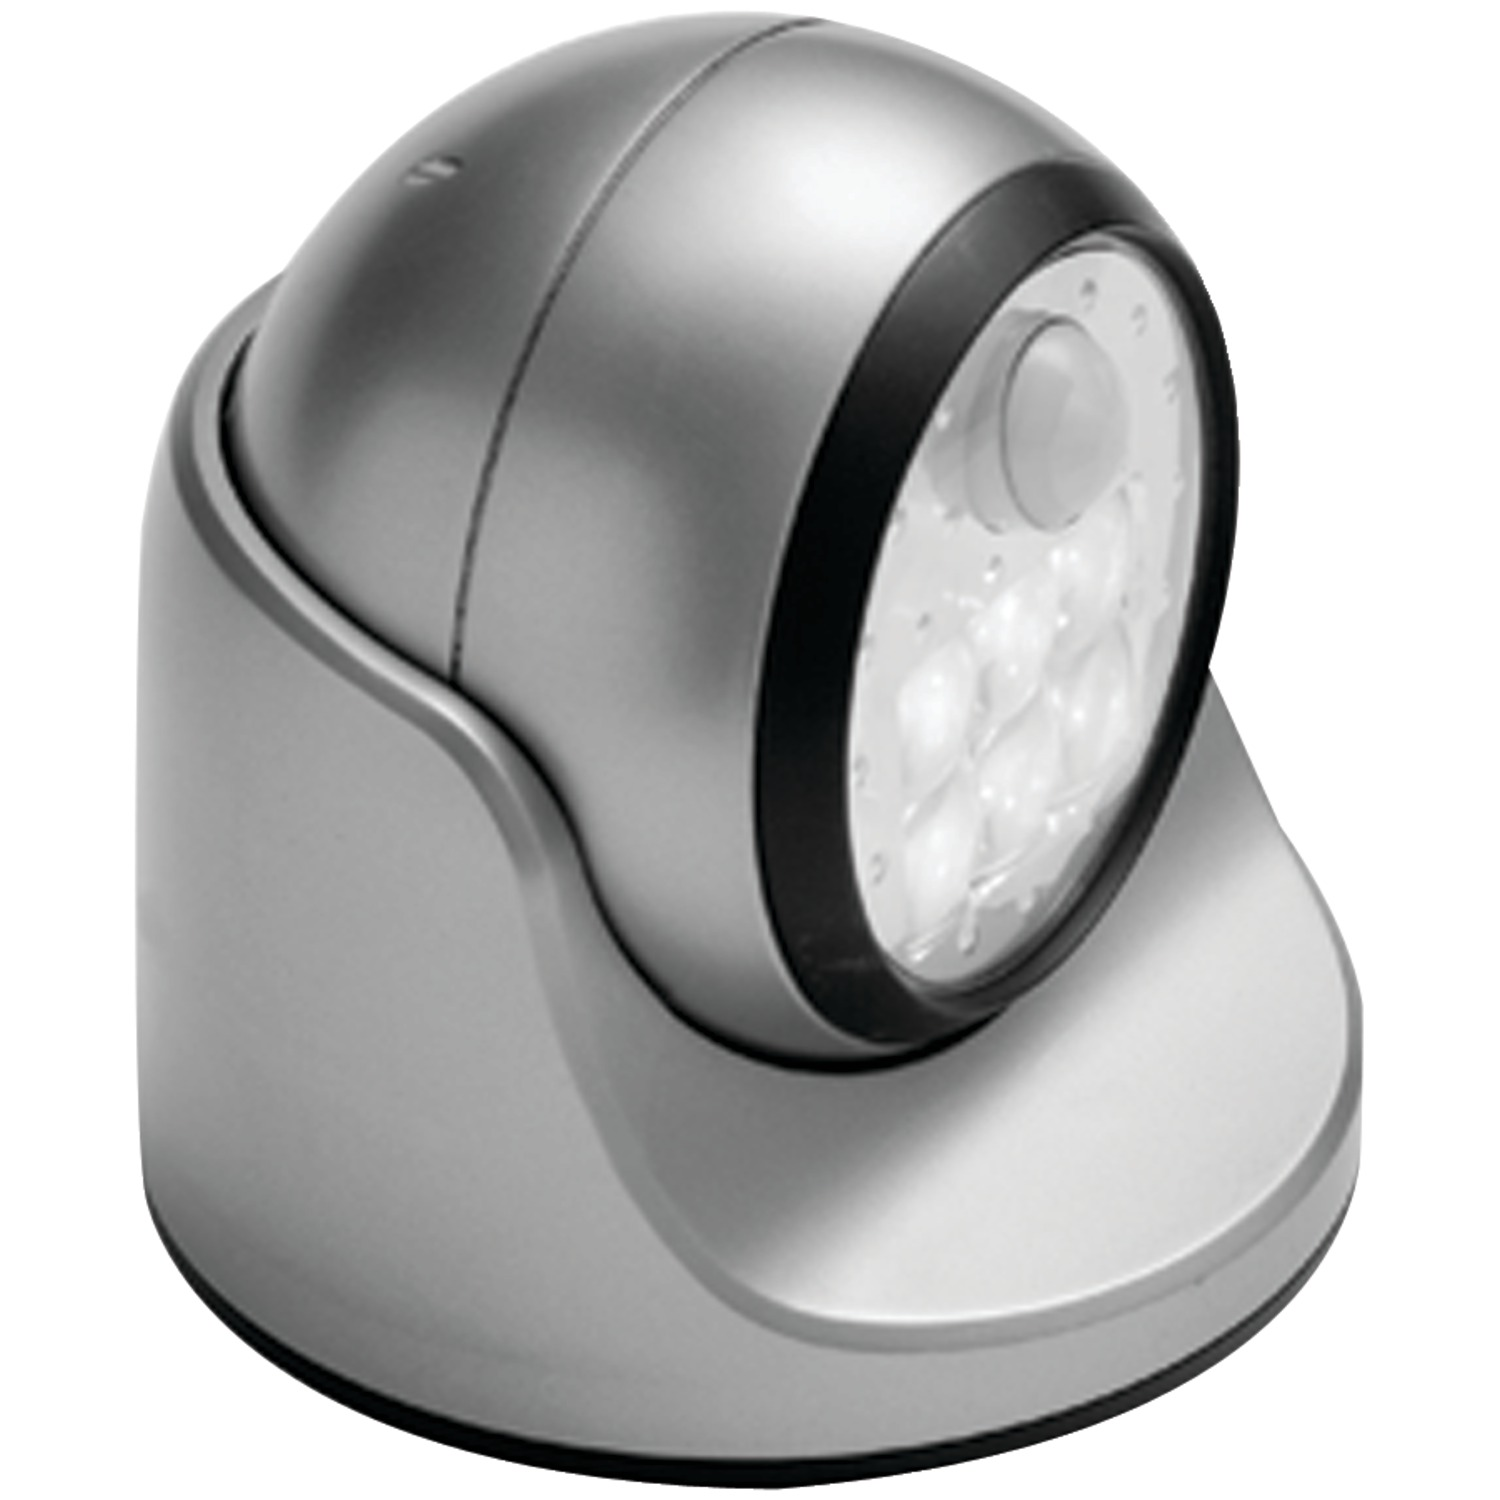 6-led Wireless Porch Light (silver)